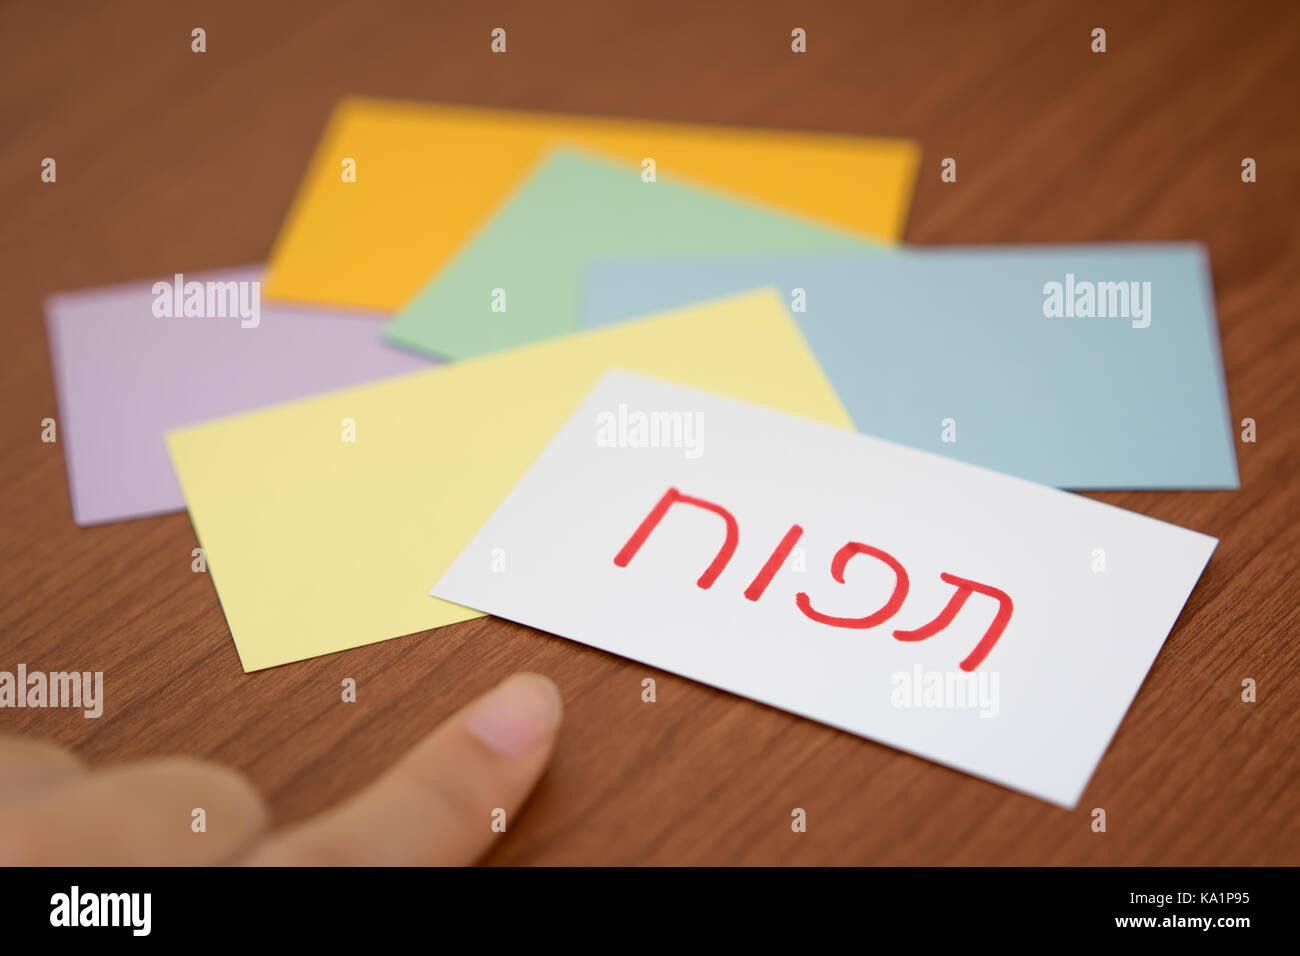 Hebrew; Learning New Language with the Flaish Card (Translation; Apple) - Stock Image